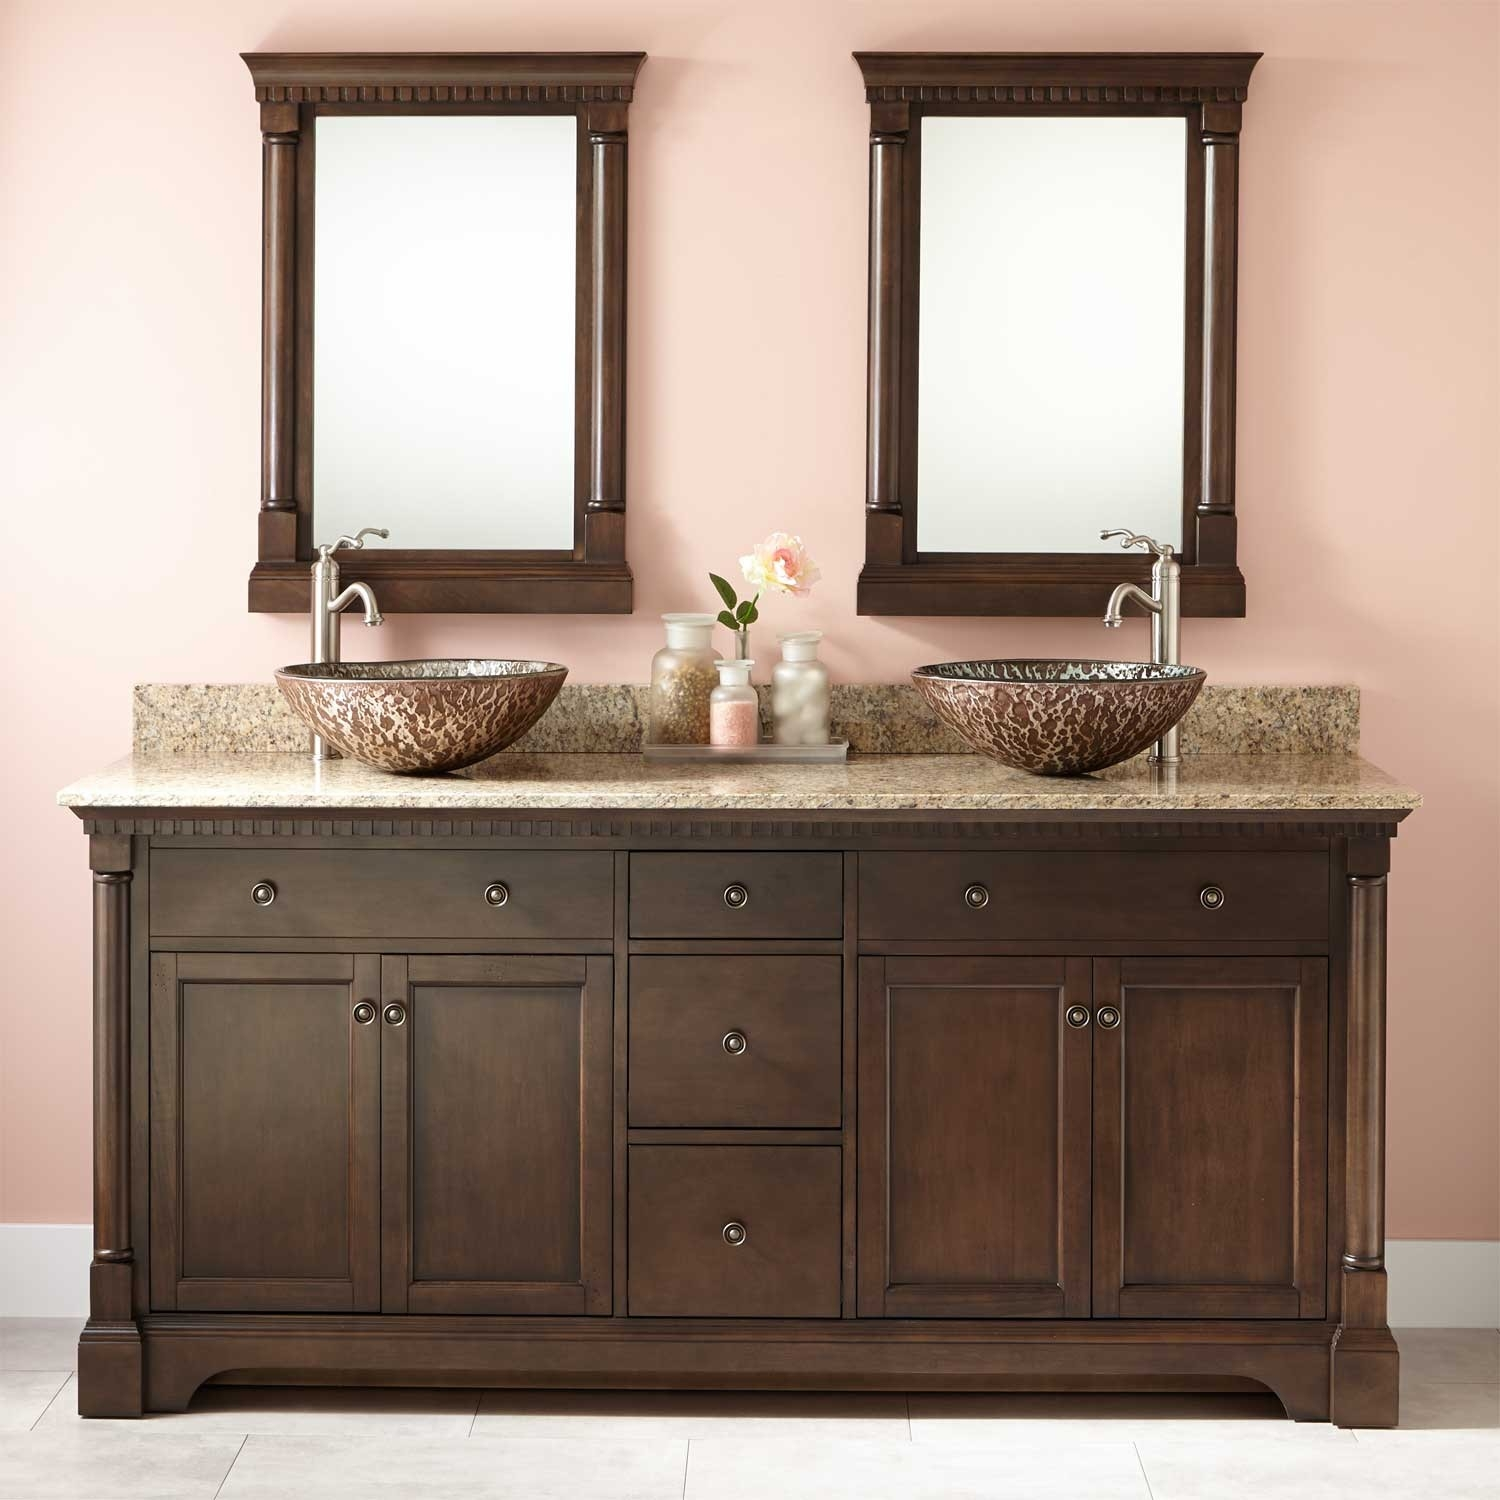 Bathroom Vanities With Bowl Sinks